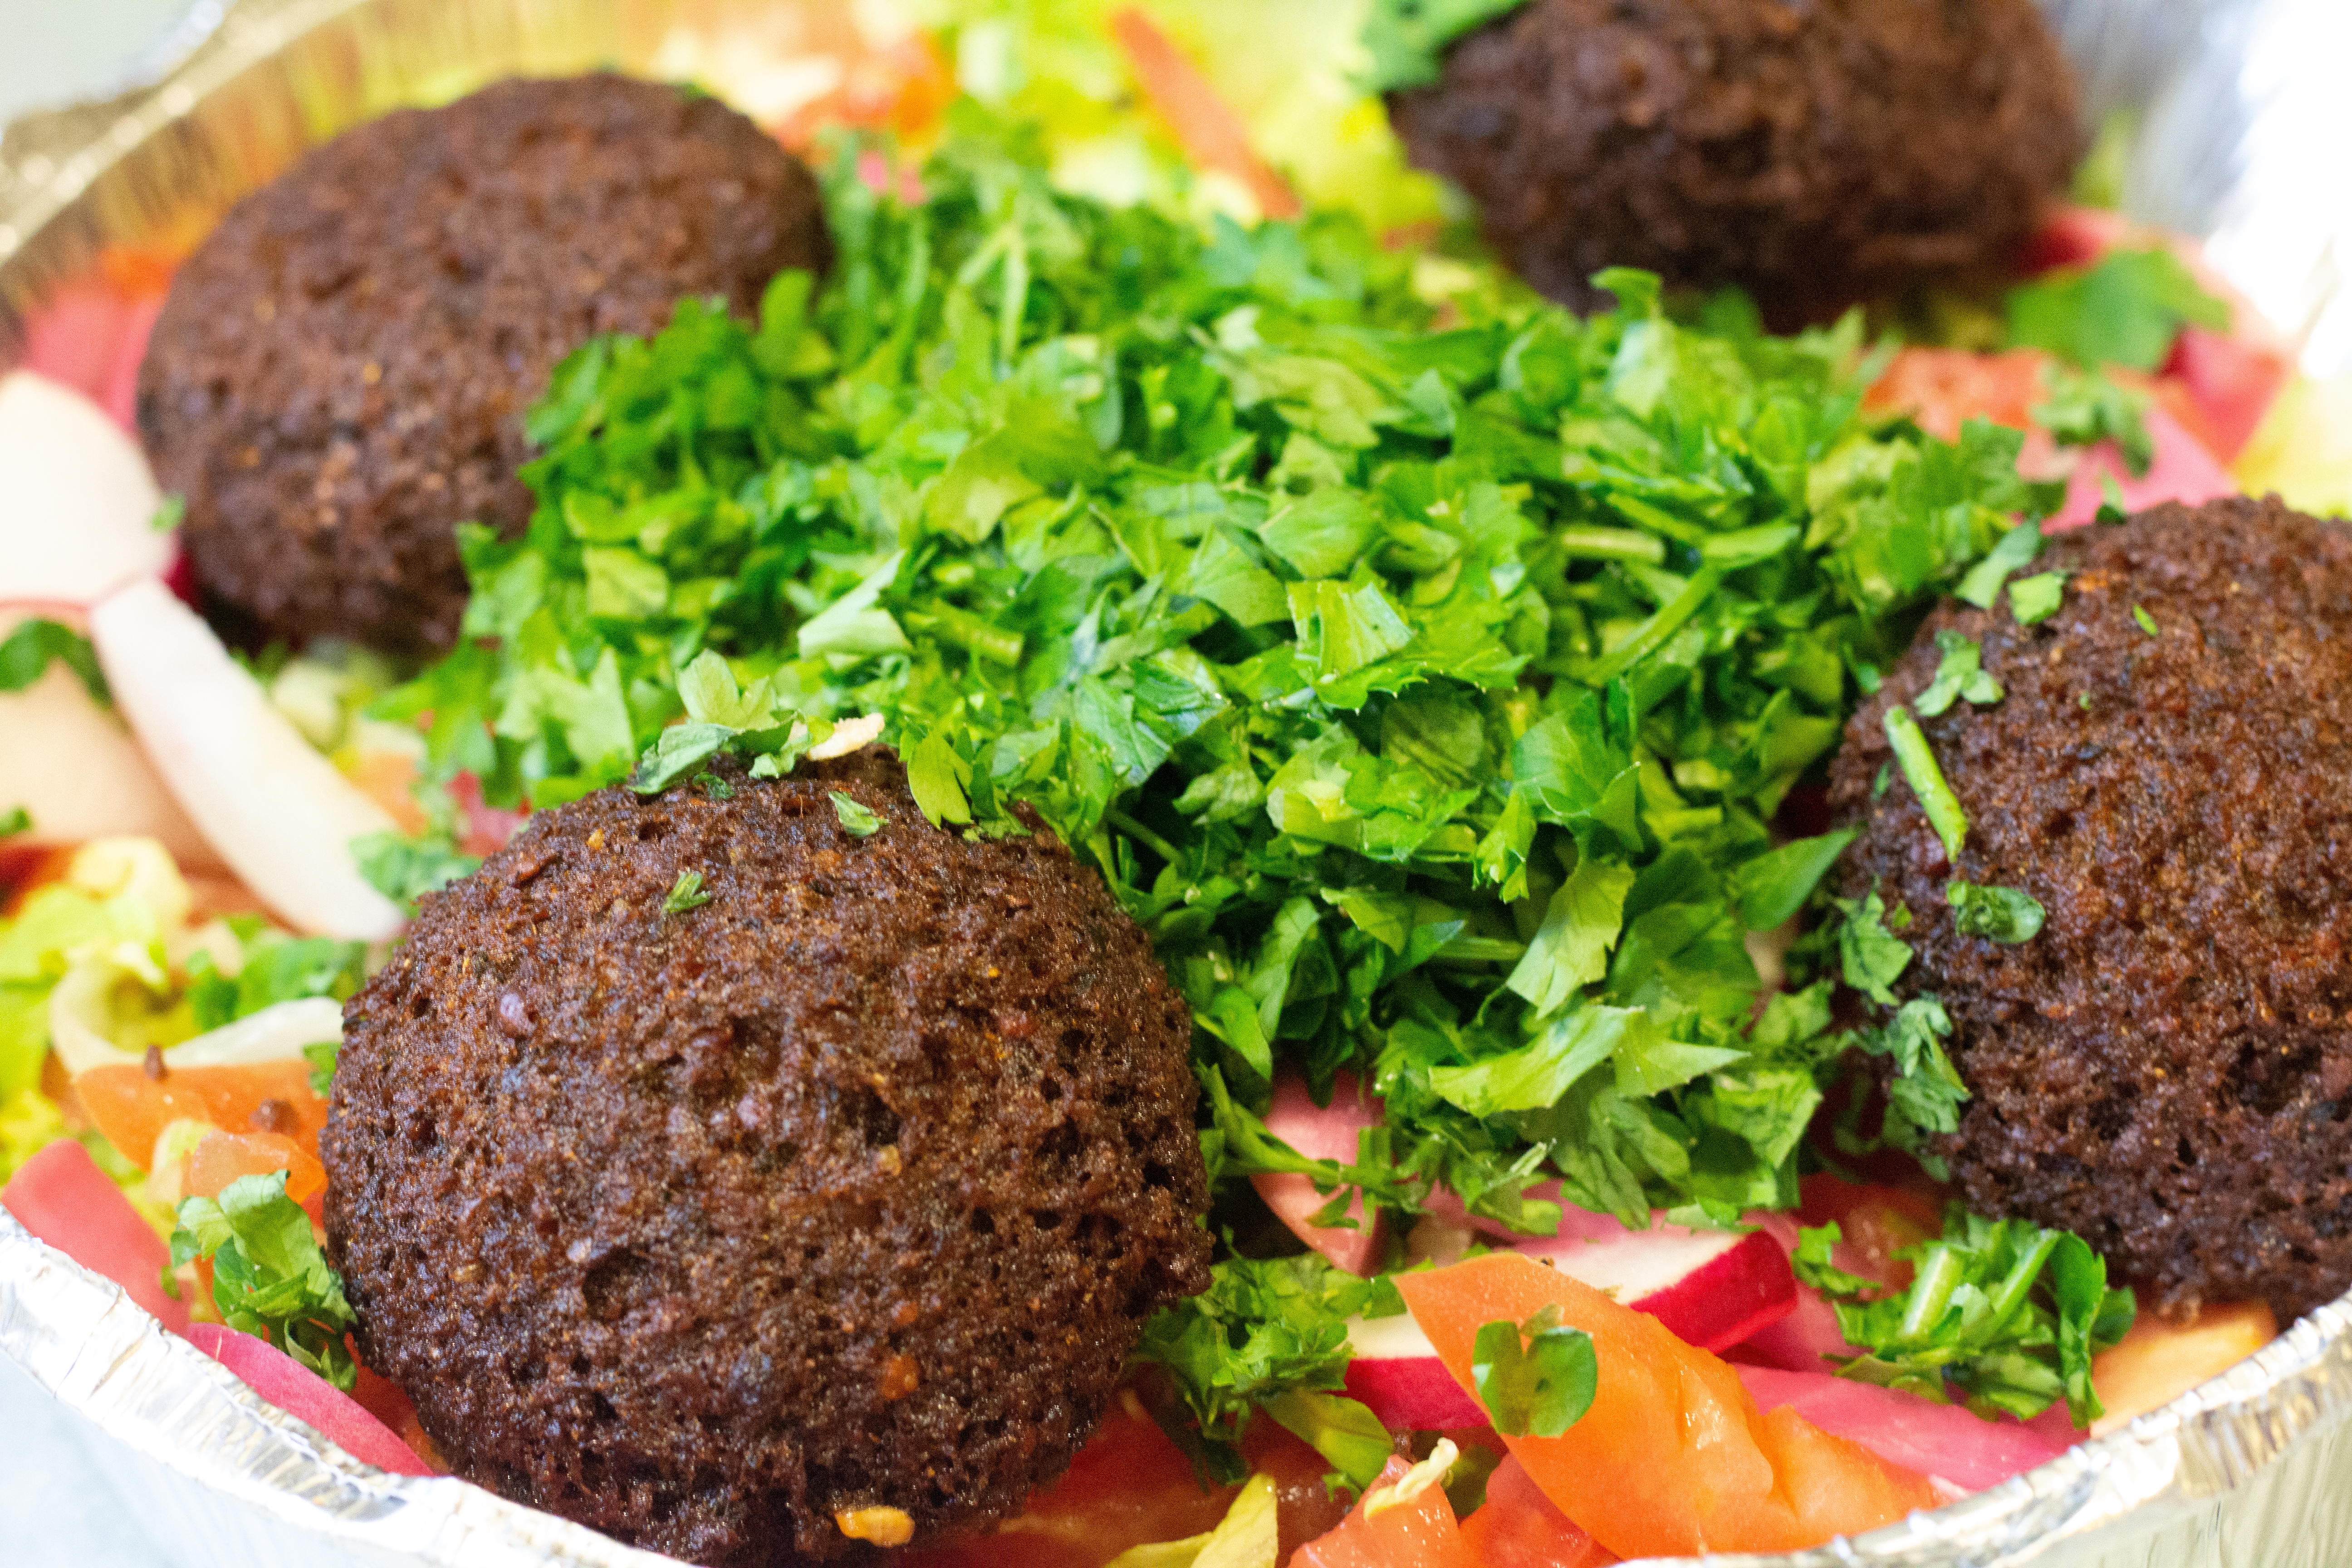 Four golden brown falafel pieces sit in a takeout container with a massive pile of chopped parsley in the center